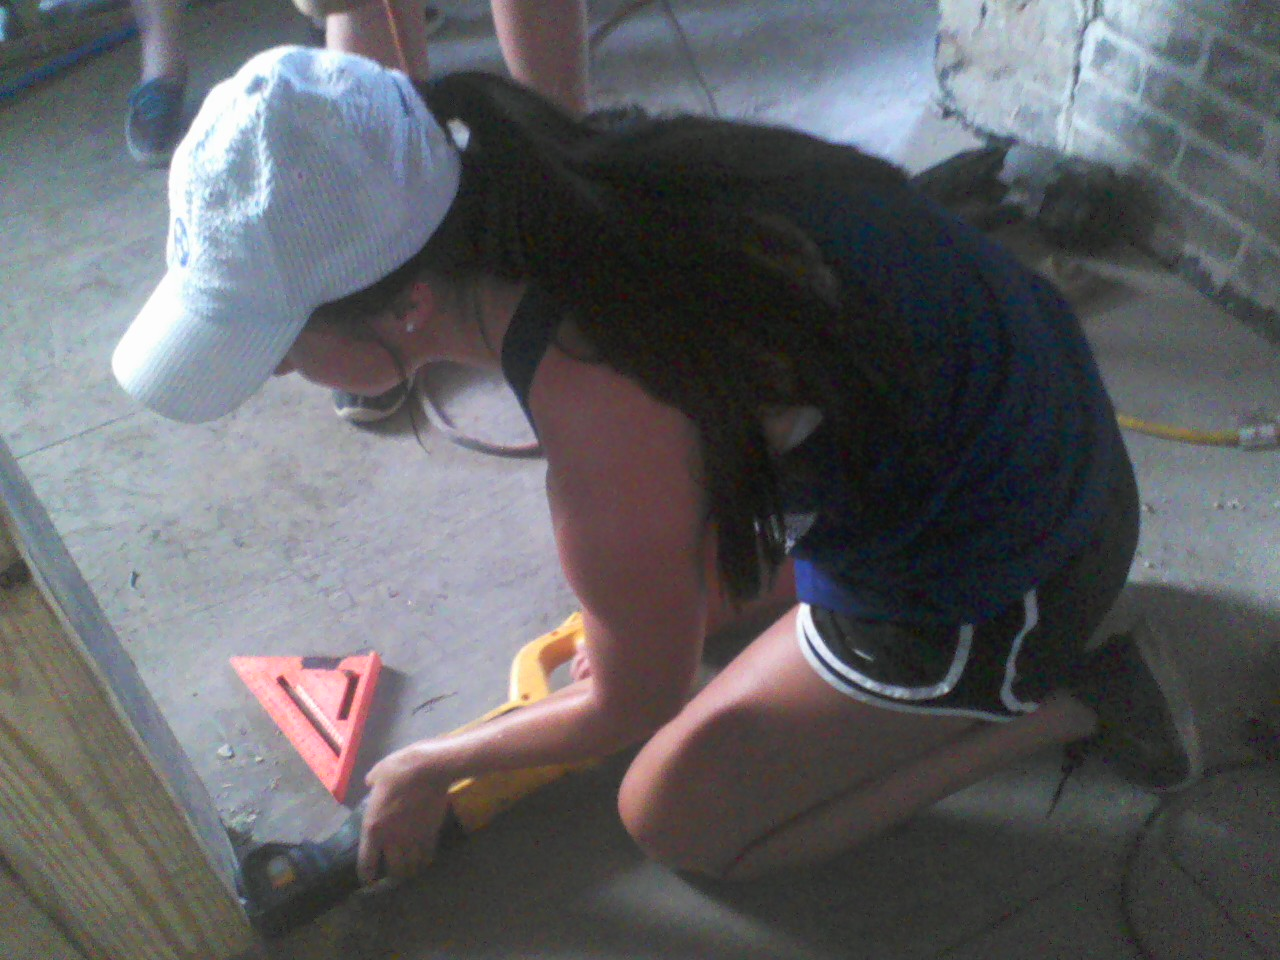 Power tool fun.